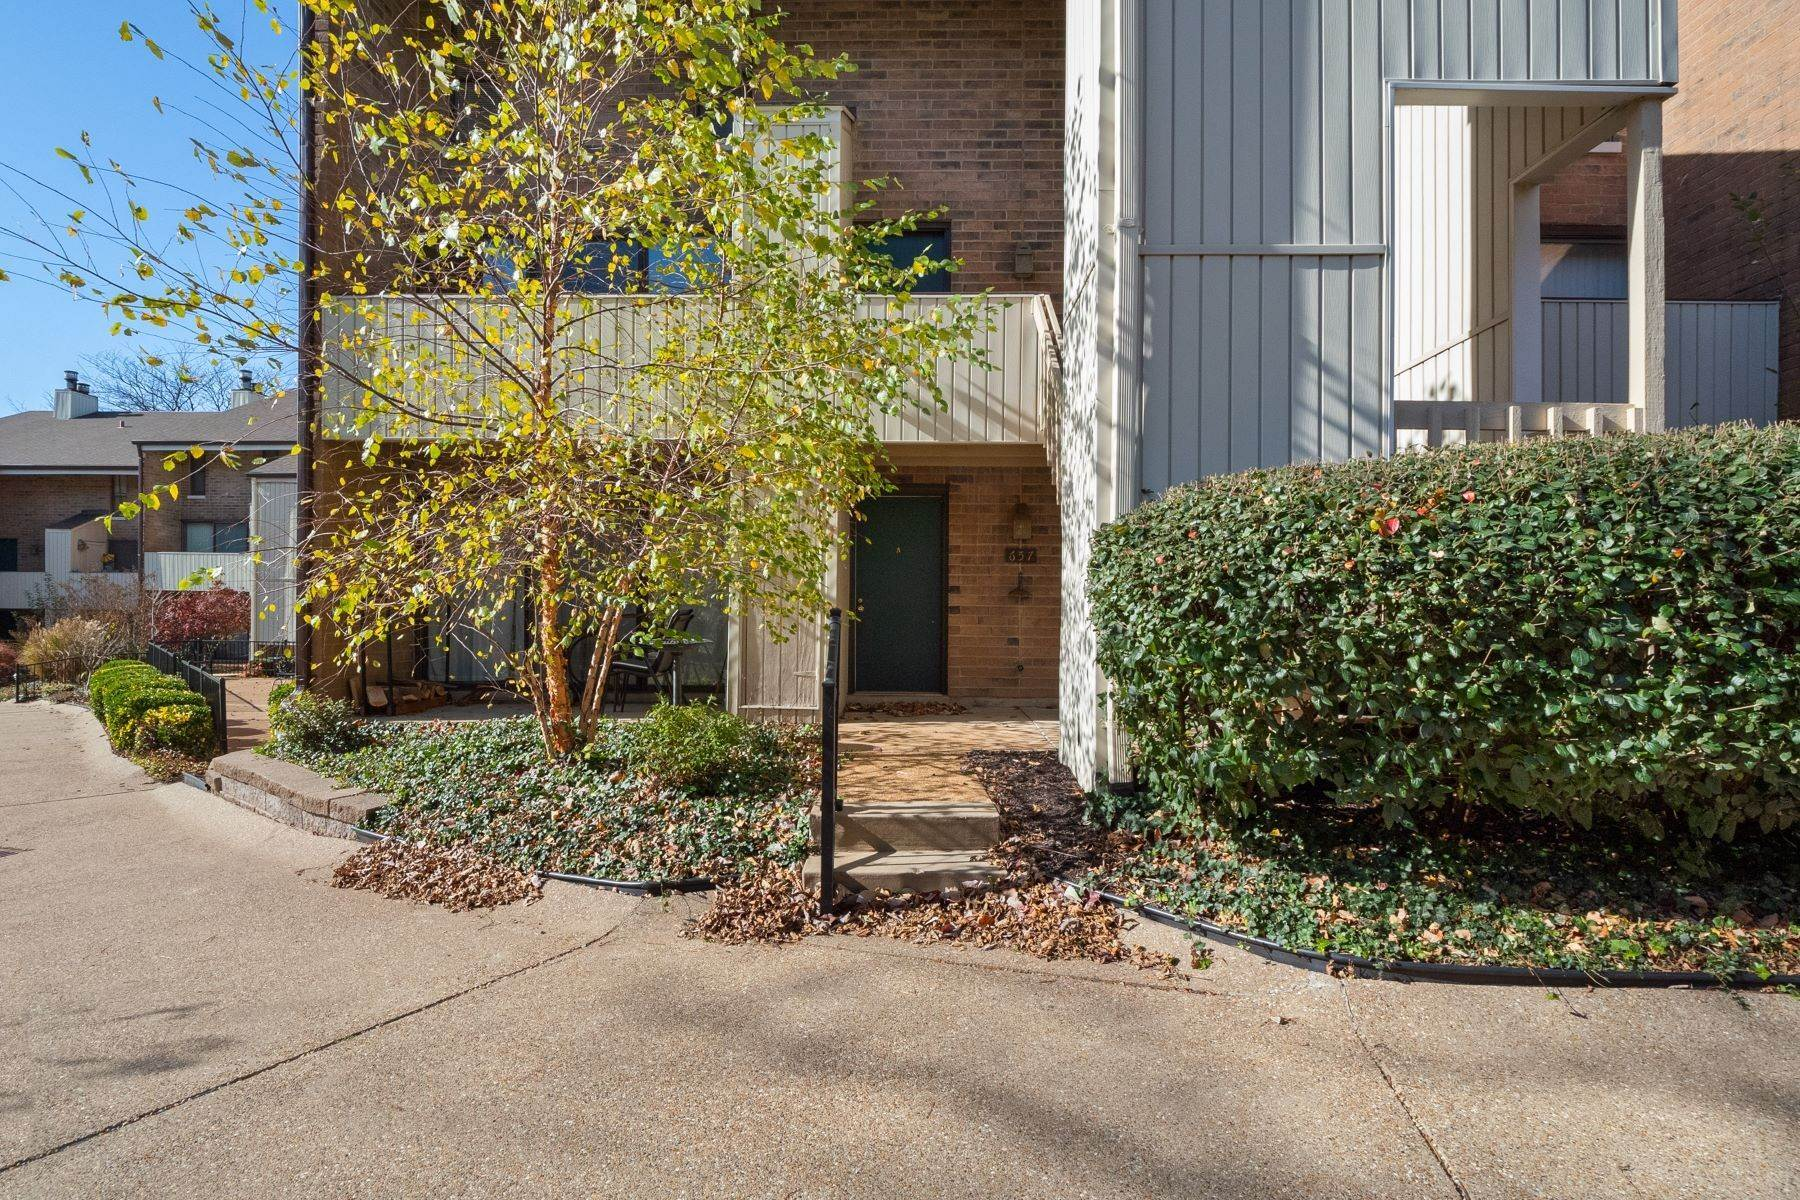 Condominiums for Sale at Beautiful Creve Coeur Townhome 657 Coeur De Royale Drive, C Creve Coeur, Missouri 63141 United States